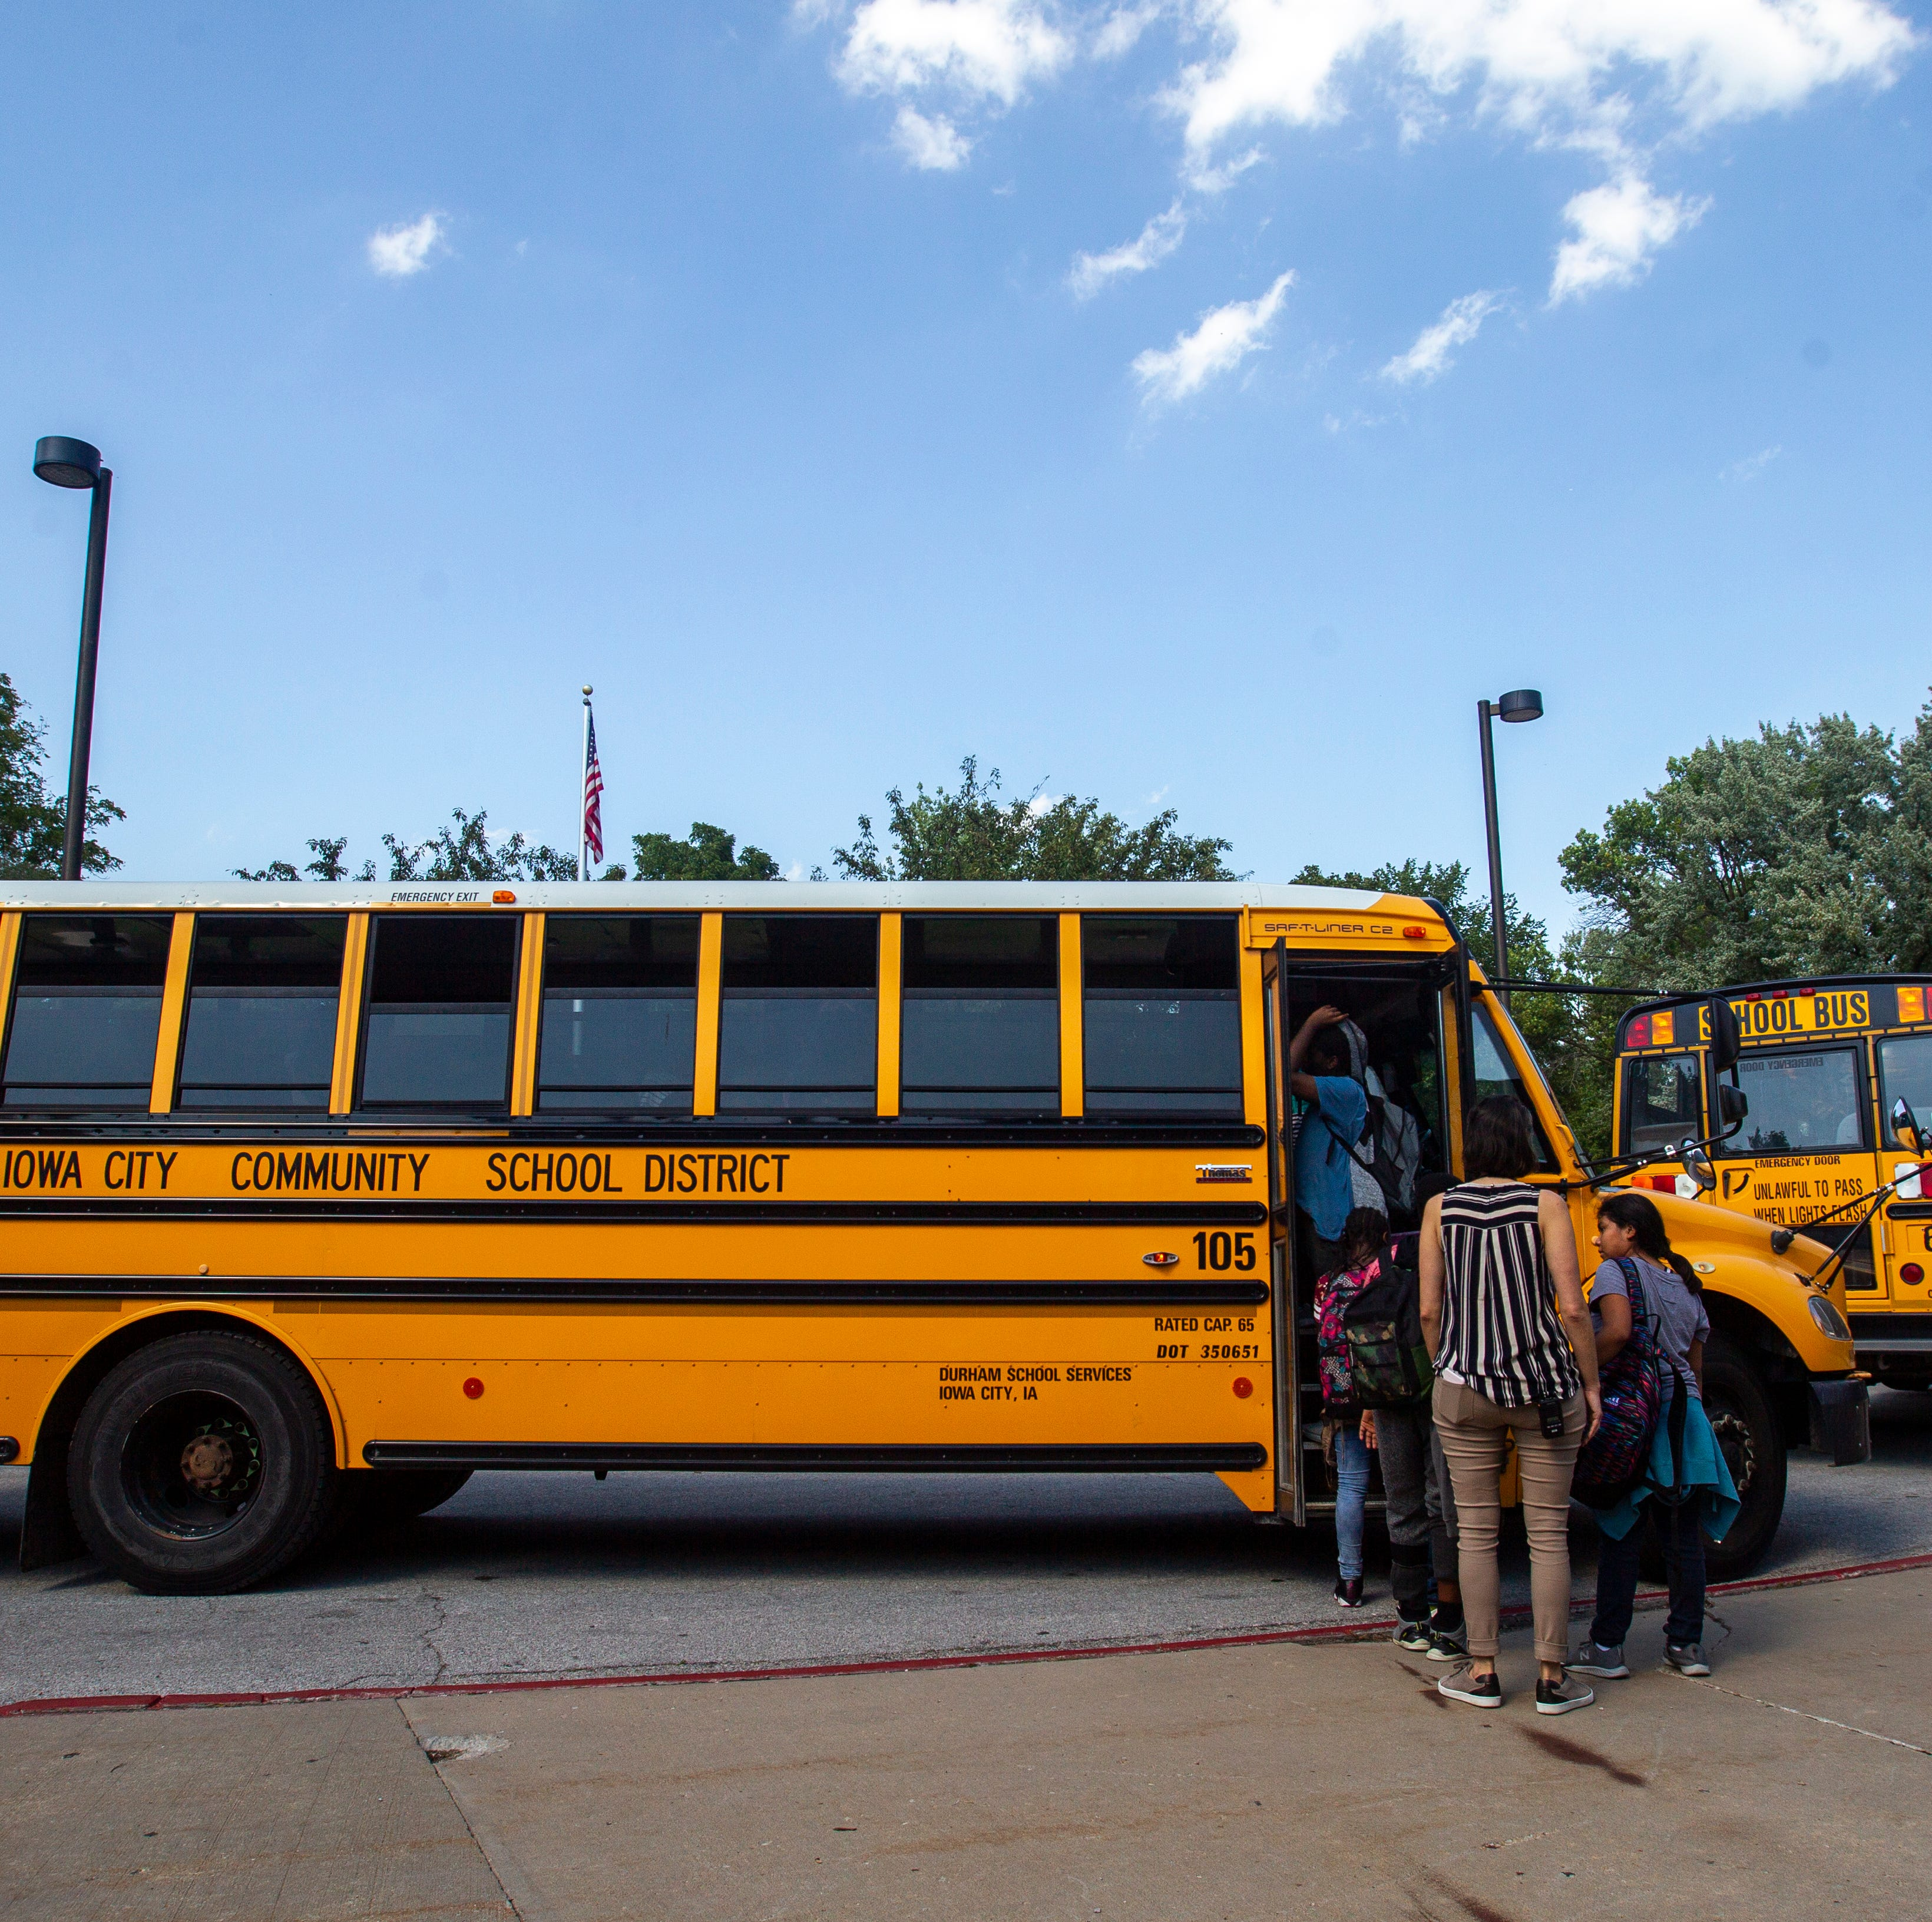 Iowa City schools had the idea to pair campuses nearly a decade ago. Why didn't it happen?